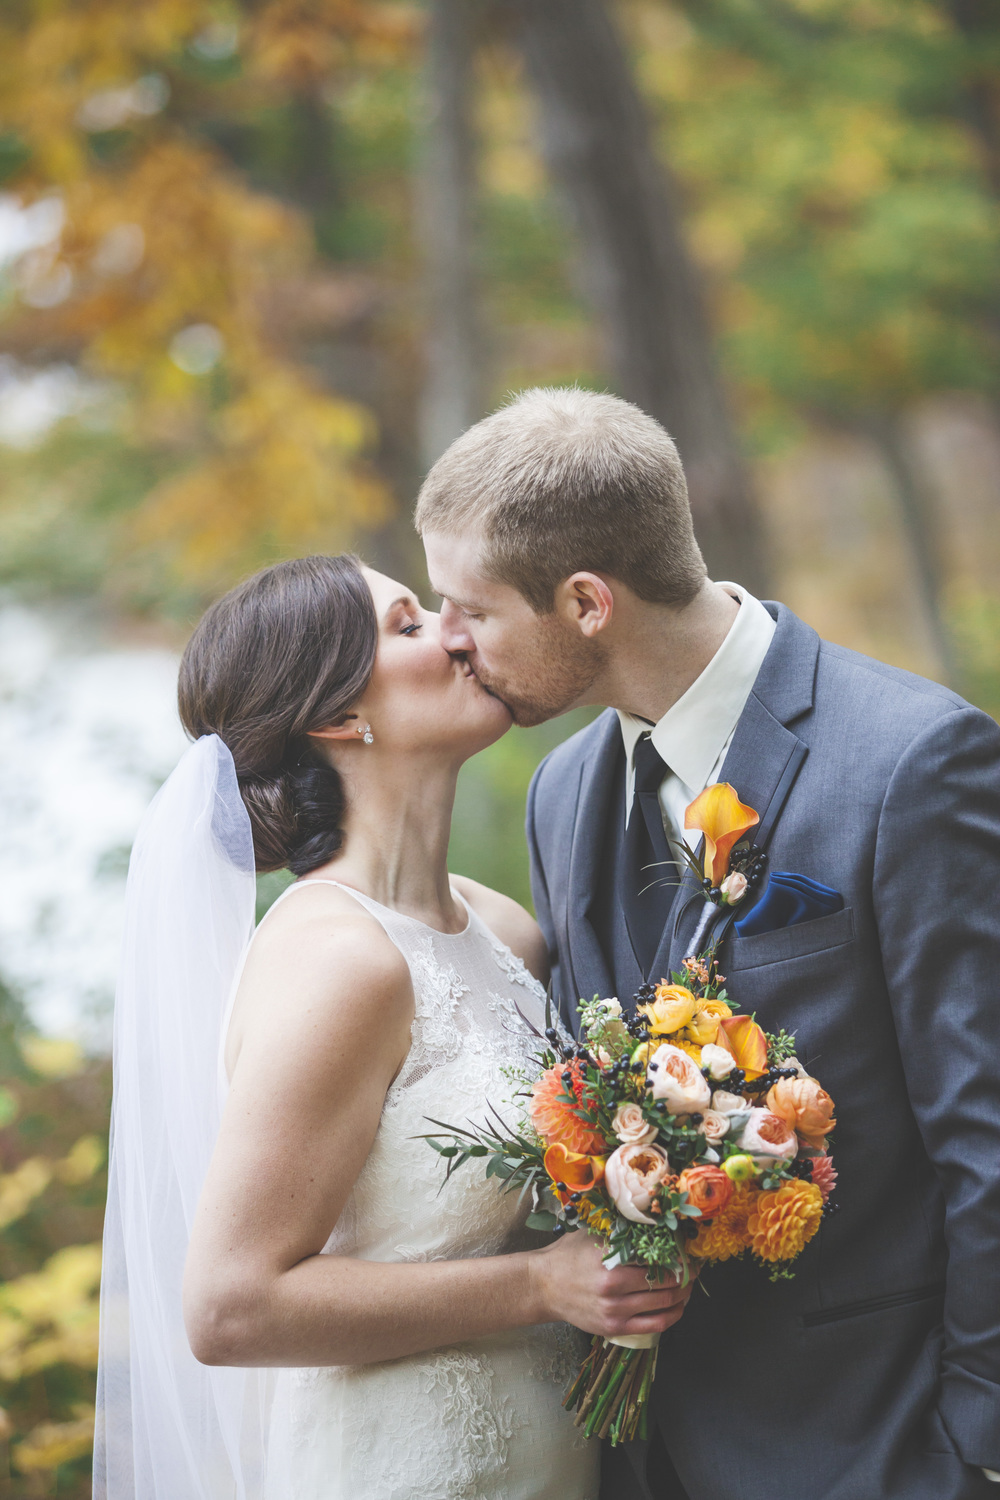 A wedding kiss photograph in Mohawk Park Brantford.